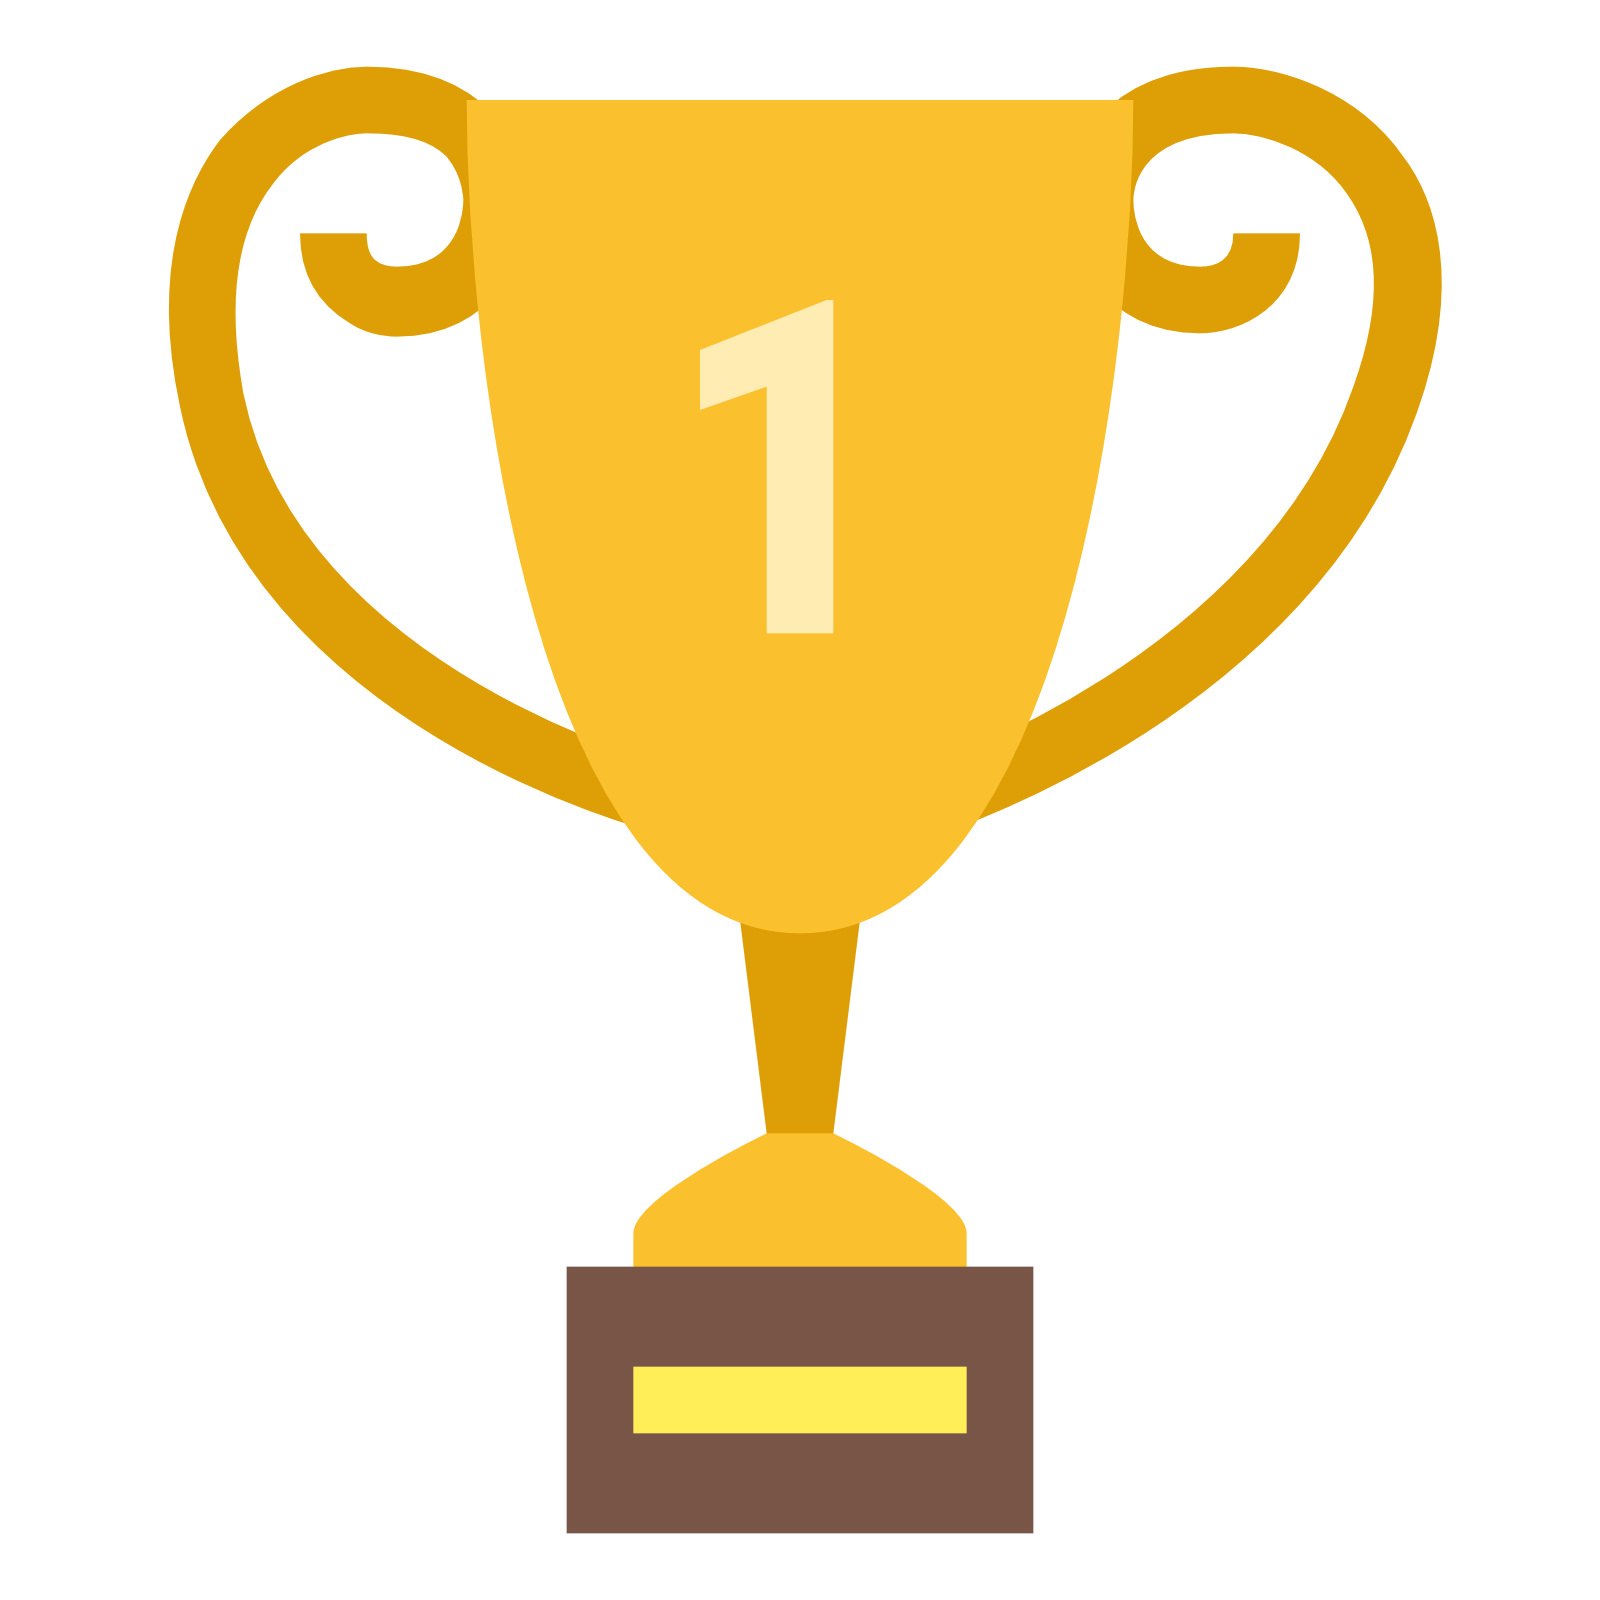 1600x1600 15 Trophy Vector Png For Free Download On Mbtskoudsalg